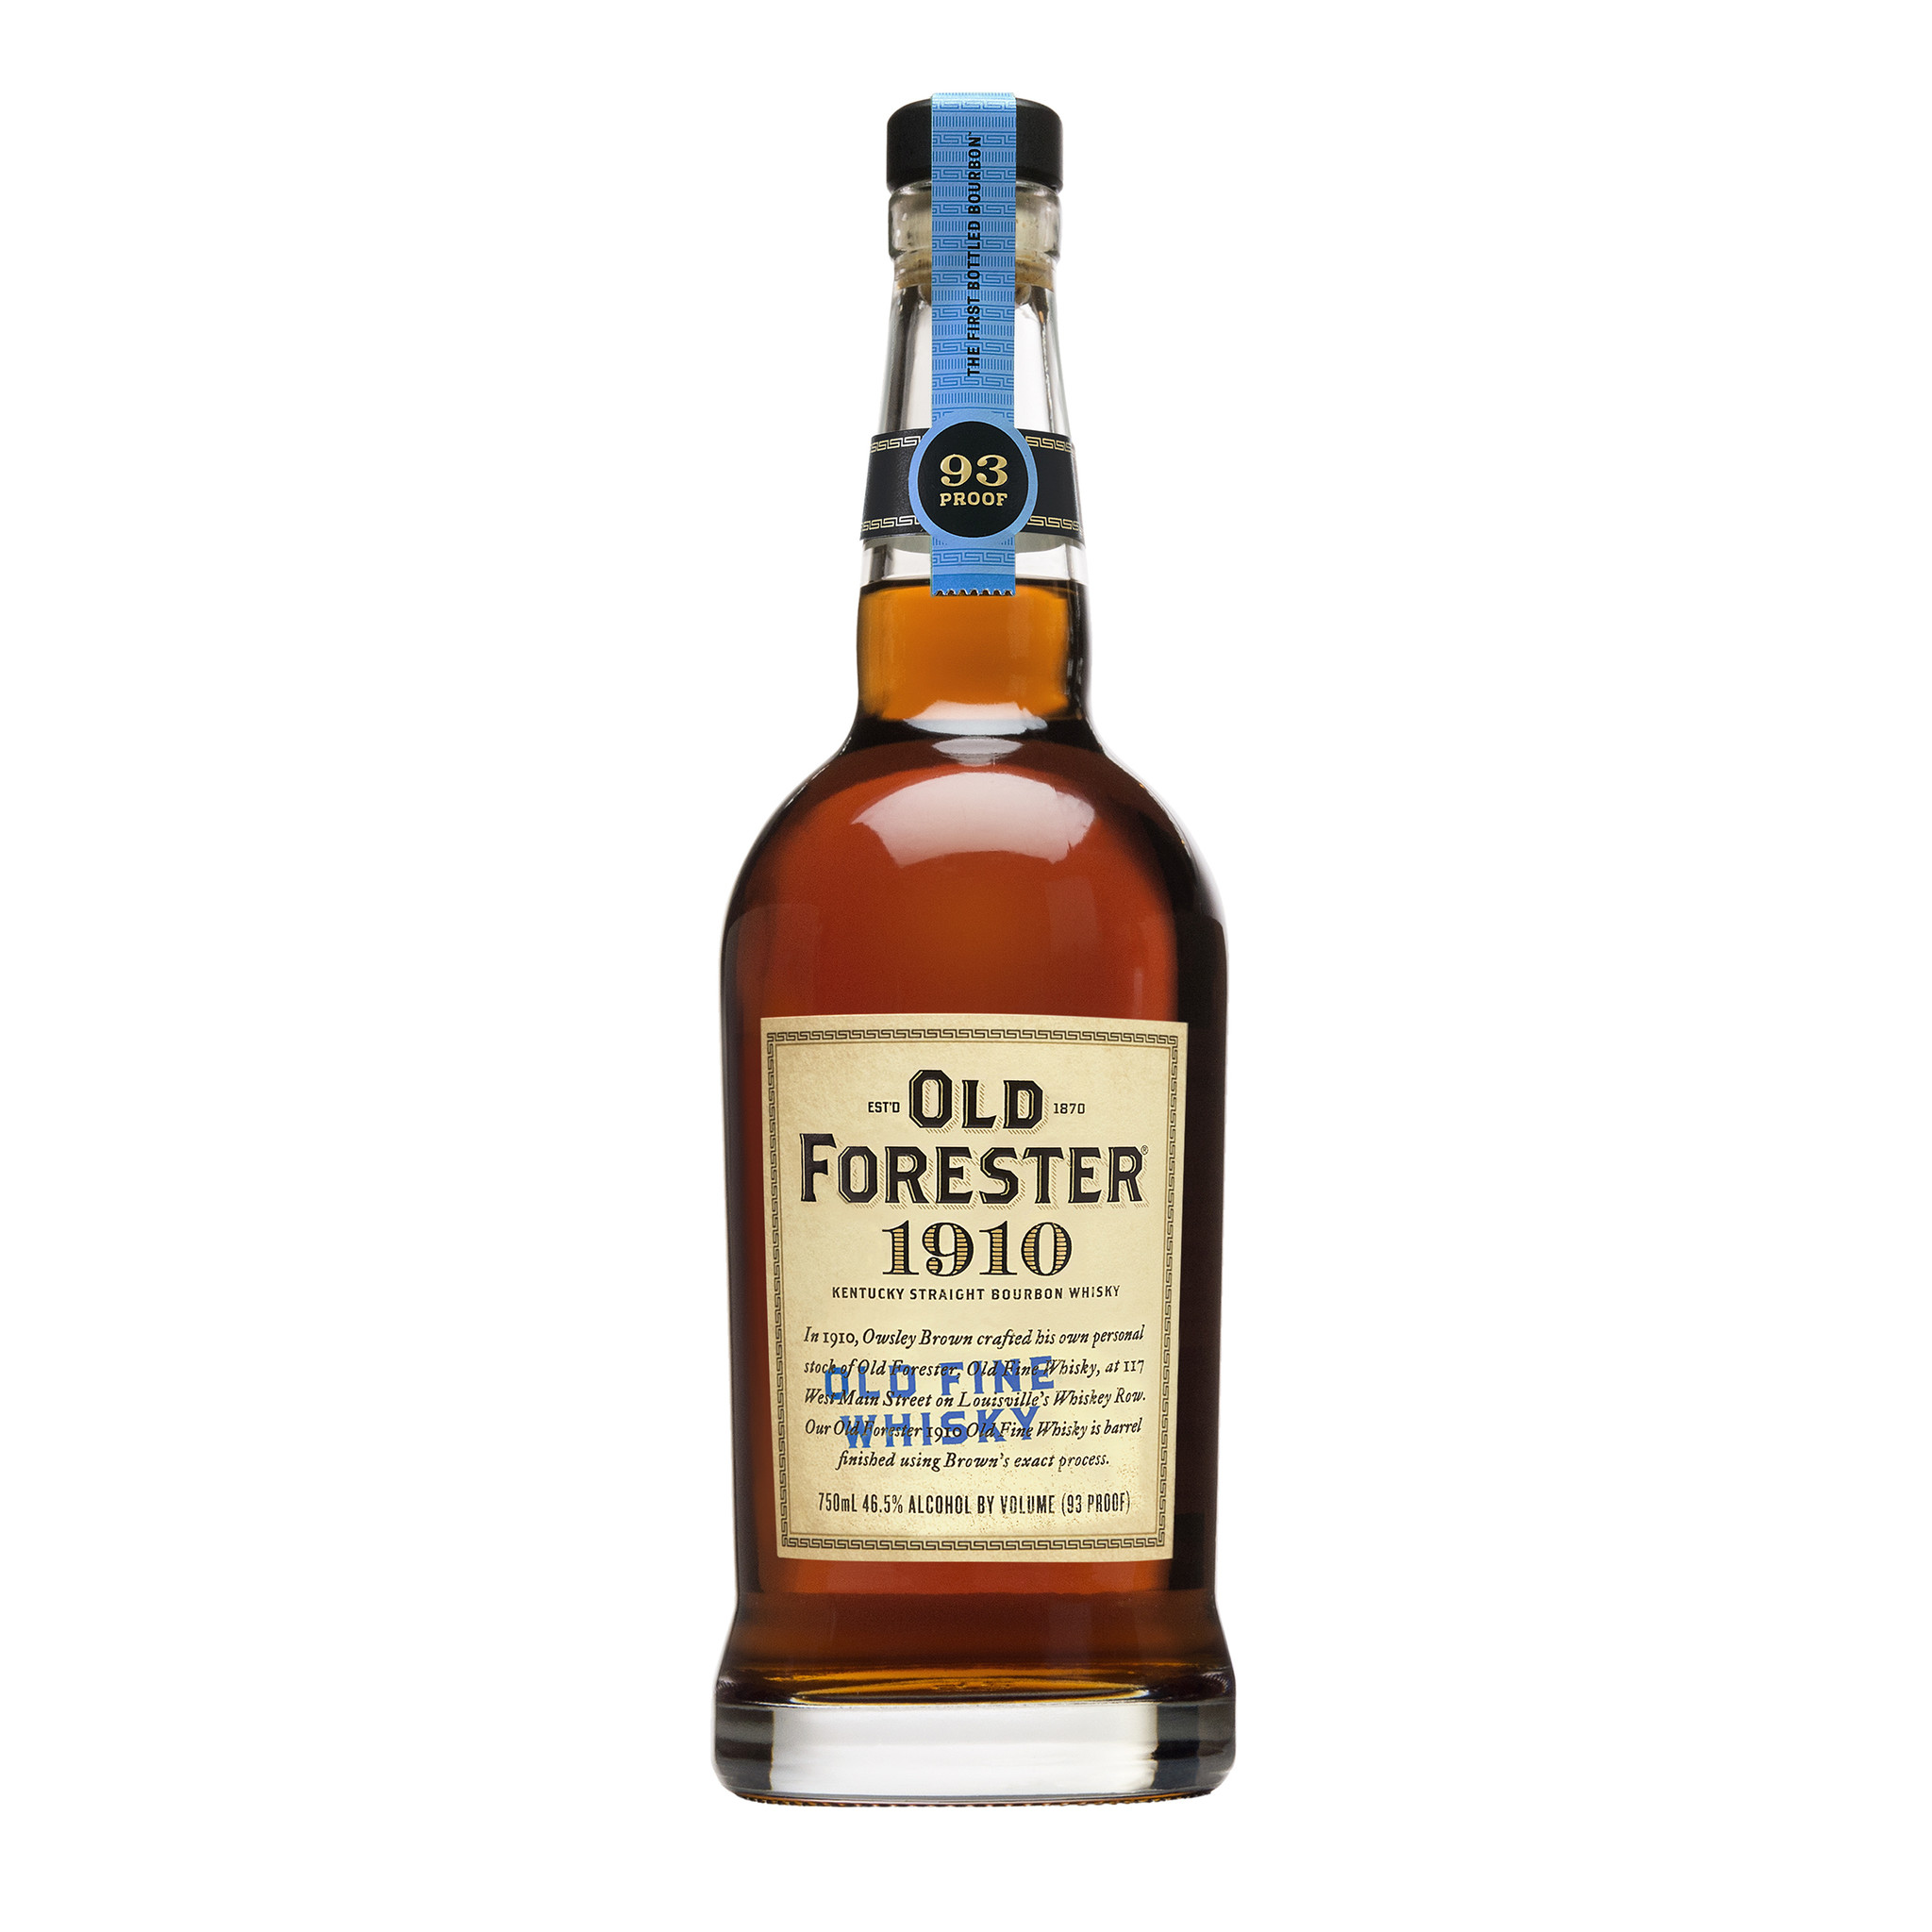 OLD FORESTER 1910, OLD FINE WHISKY, 750 ml